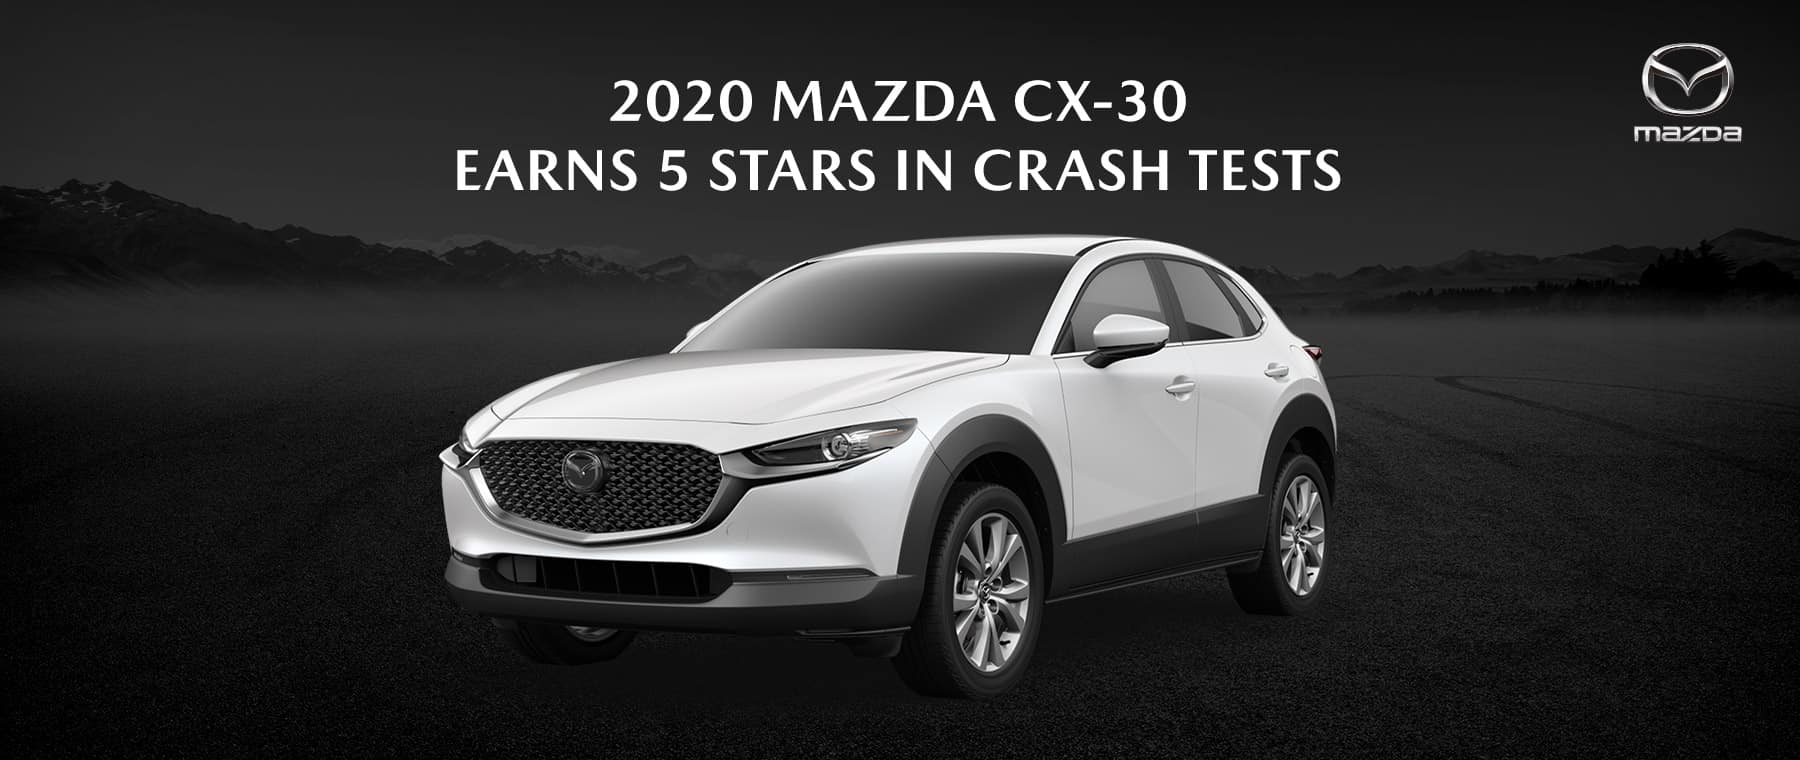 2020 Mazda CX-30 Wins 5-Star Overall Score for Vehicle Safety - Bert Ogden Mission Mazda - Mission, TX